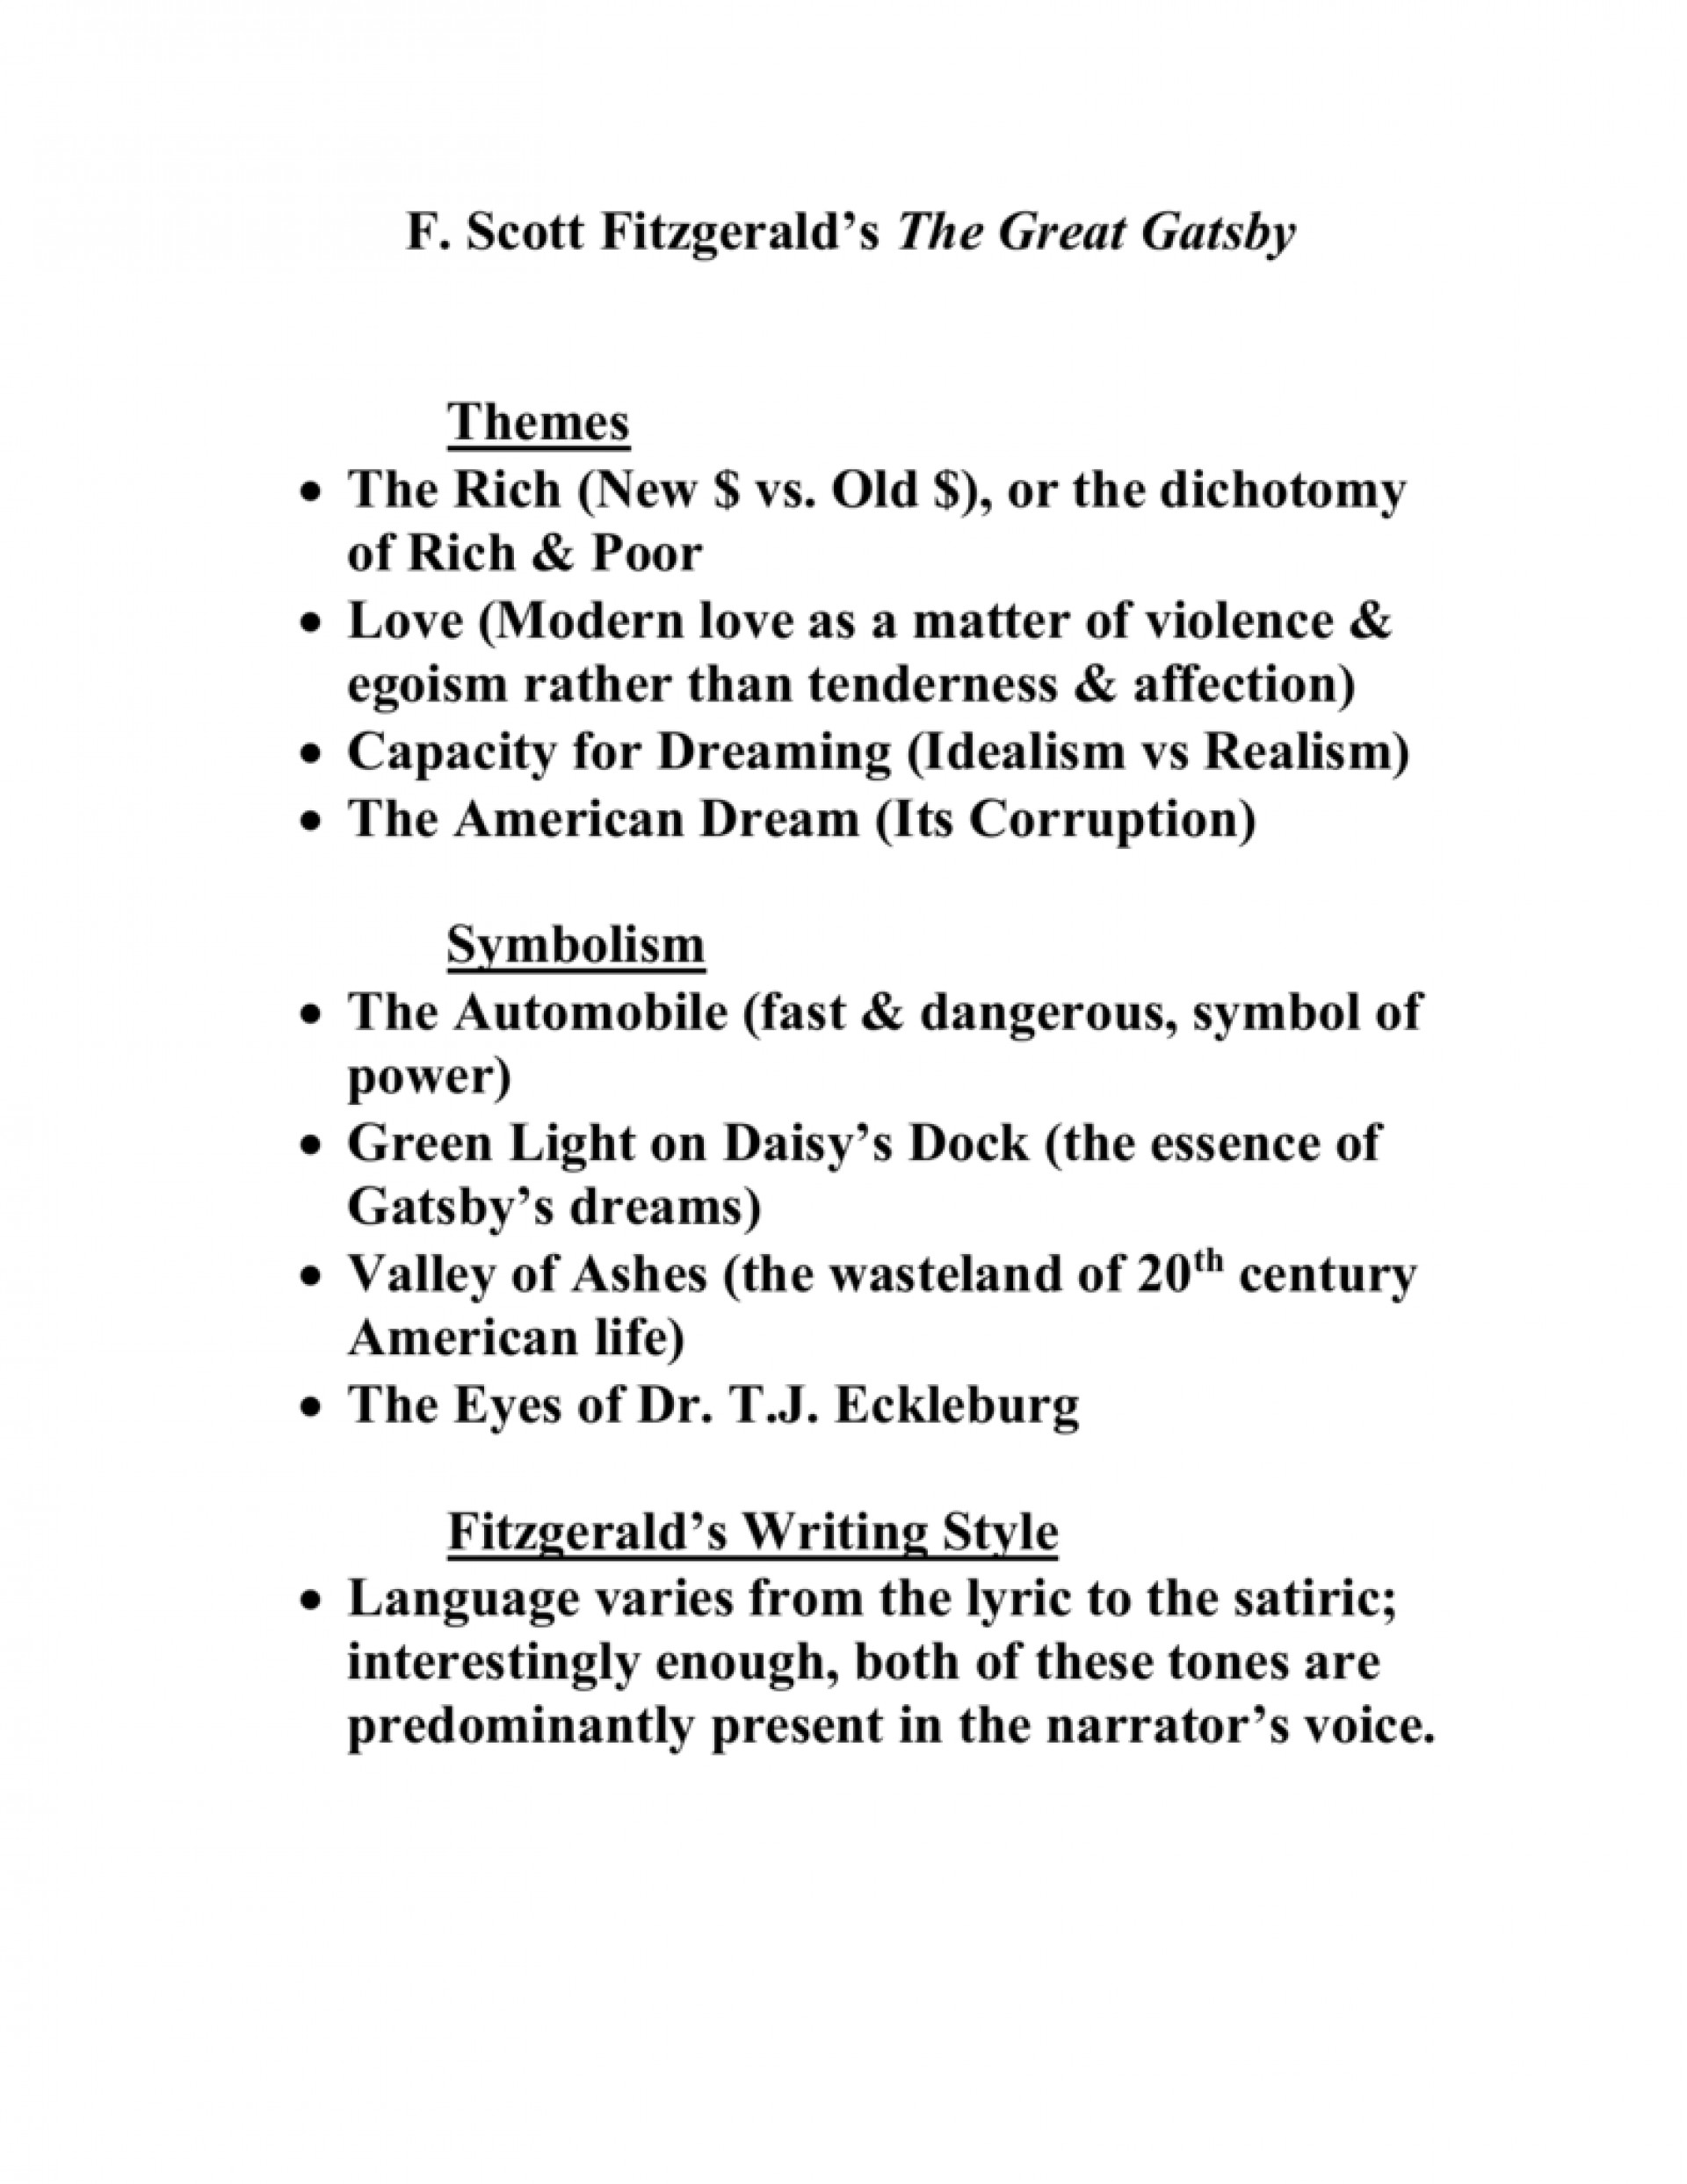 017 The Great Gatsby Themes Essay 008039513 1 Stirring Money Theme American Dream 1920